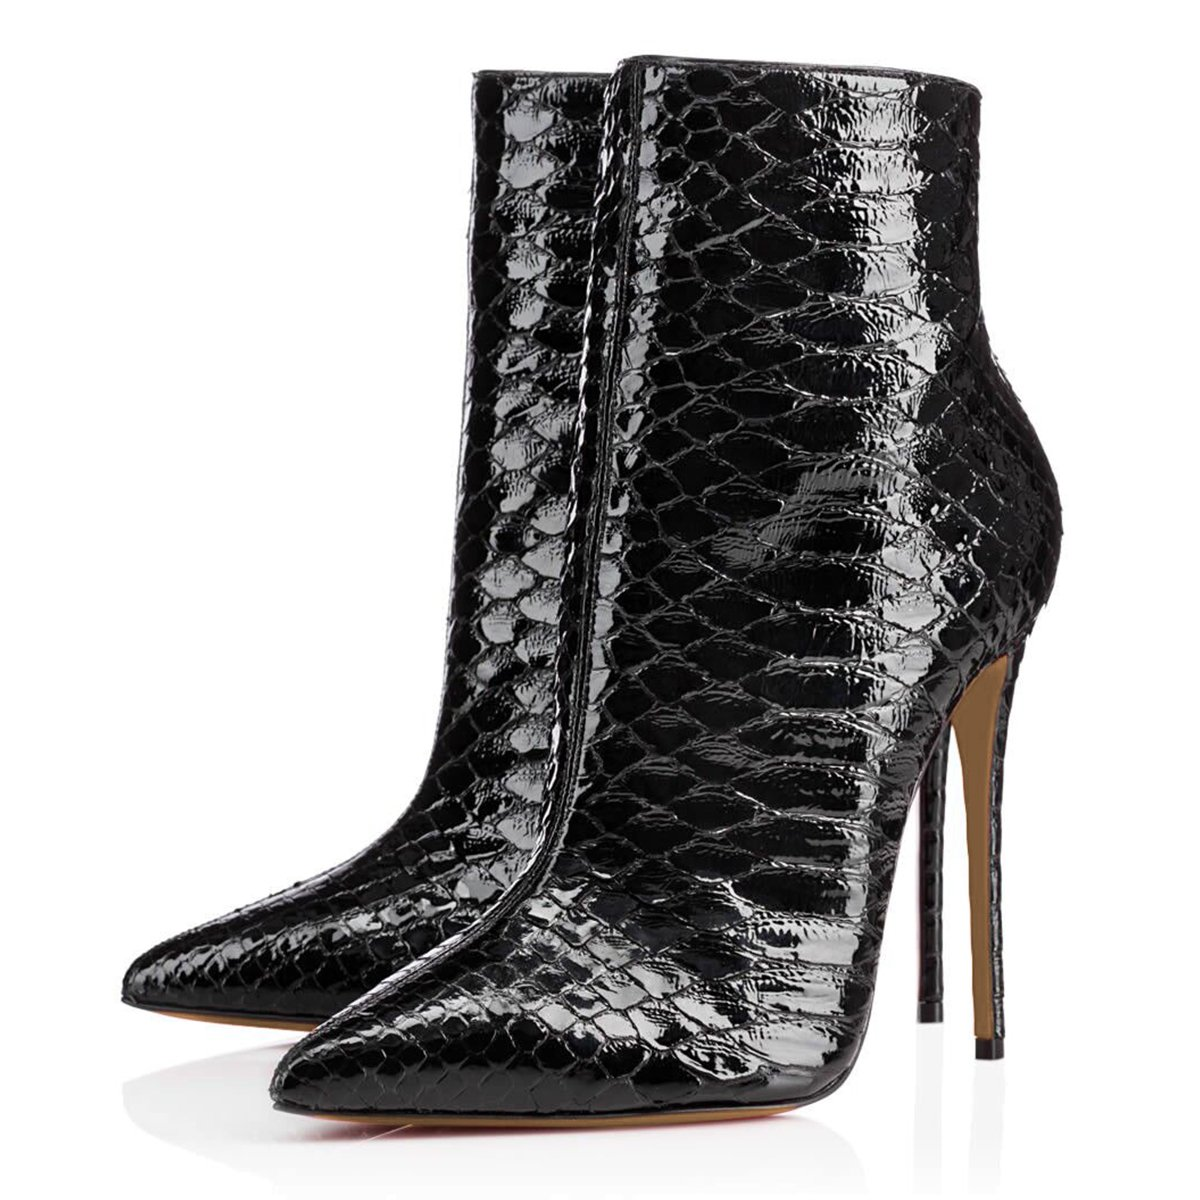 FSJ Women Fashion High Heel Ankle Boots with Rivets Pointed Toe Stilettos Zipper Shoes Size 4-15 US